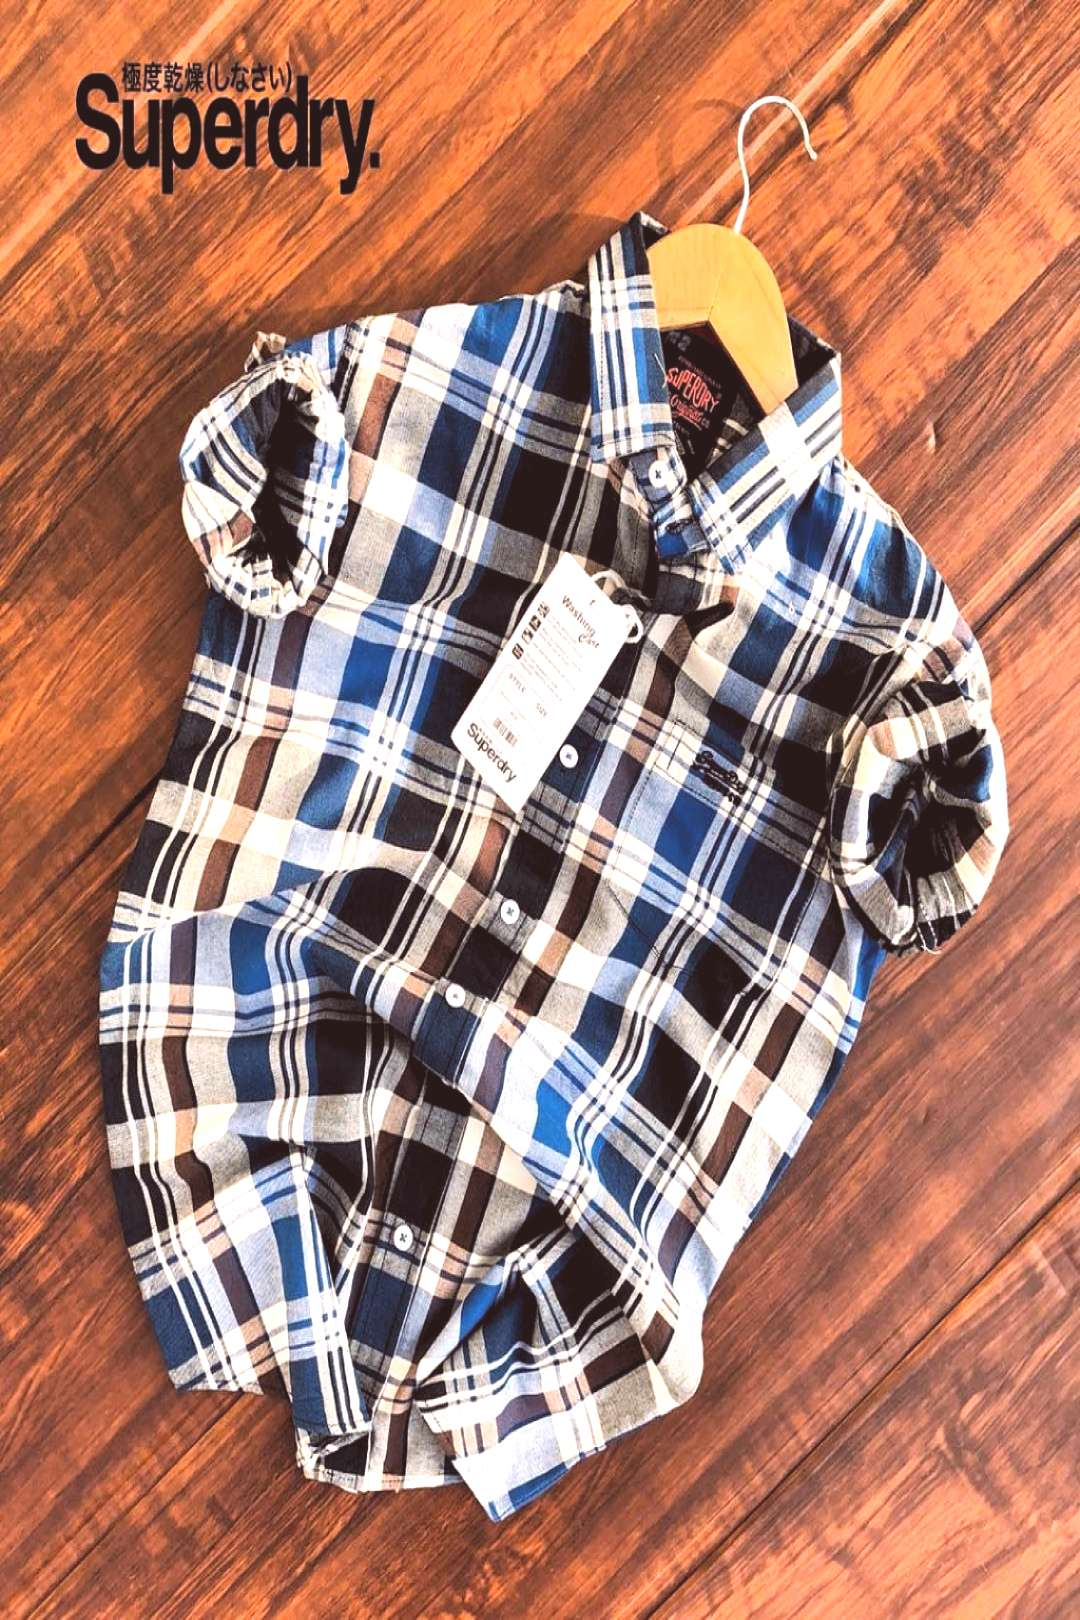 [New] The 10 Best Photography (with Pictures) - SUPERDRY High quality CHECK SHIRTS 2 awesome color